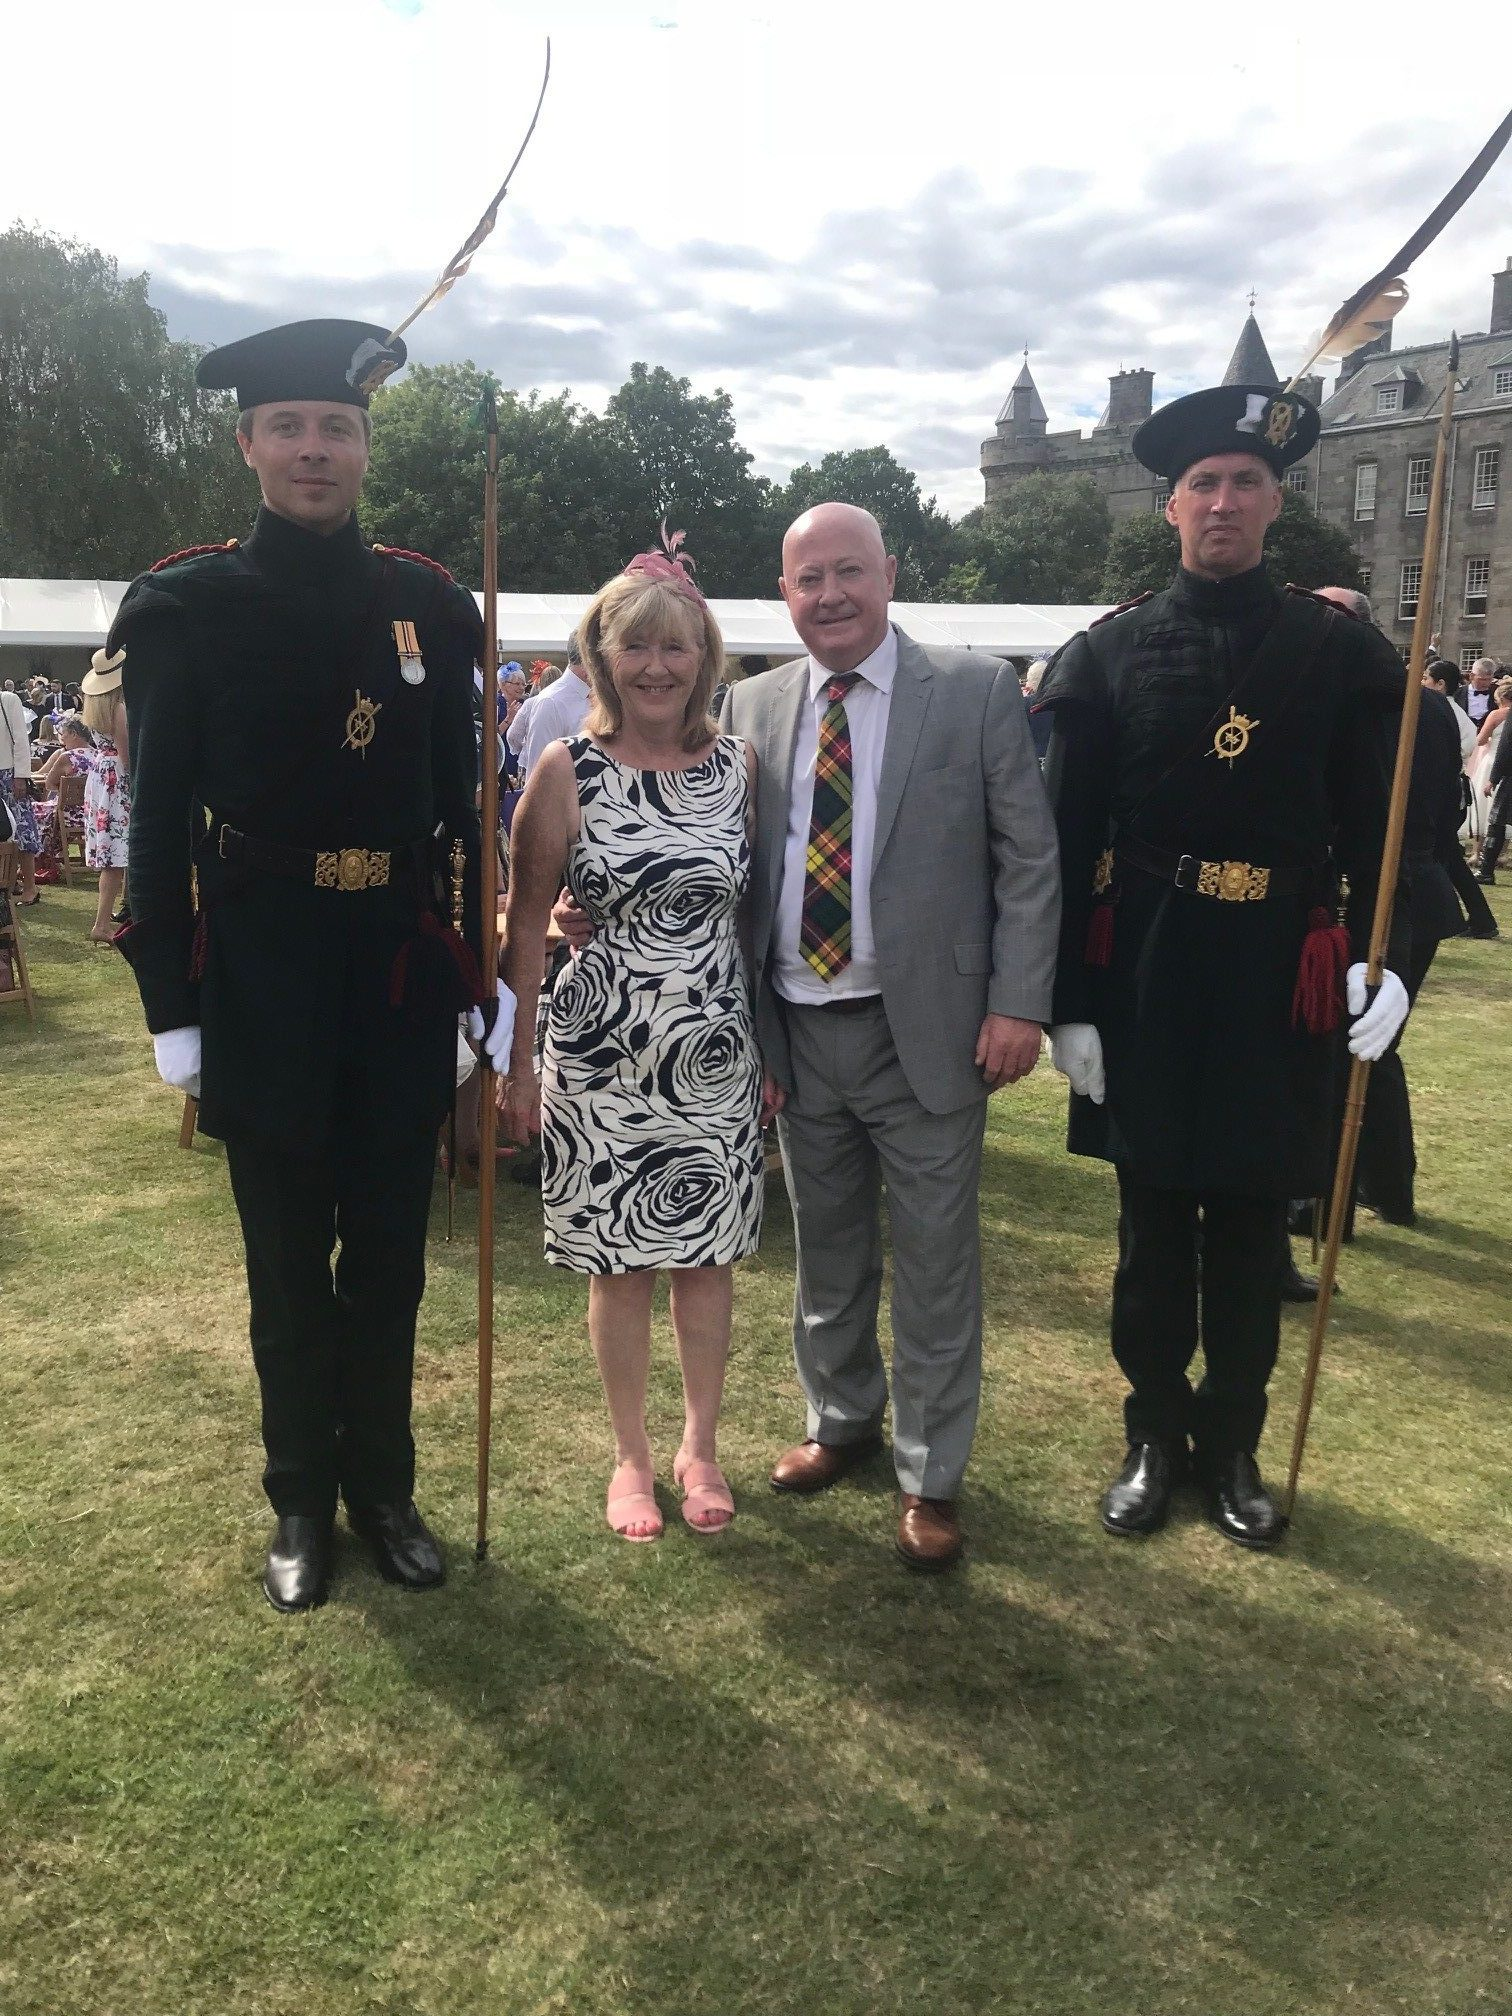 In recognition of his work, Brian and his wife, Iris attended the Queen's Garden Party at Holyrood